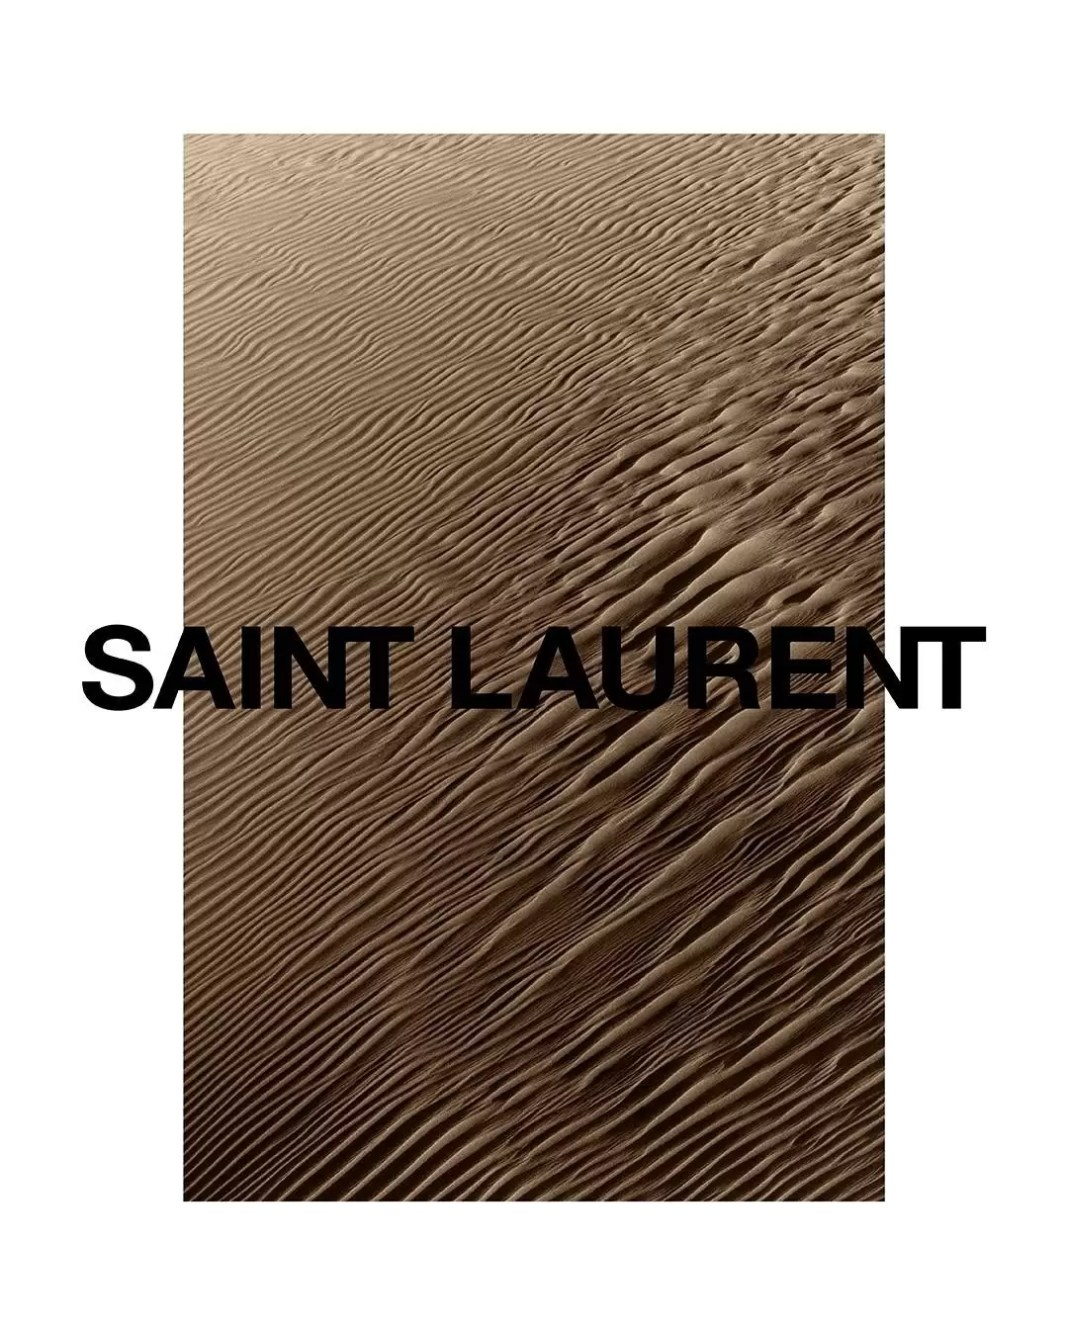 Saint Laurent's Summer21